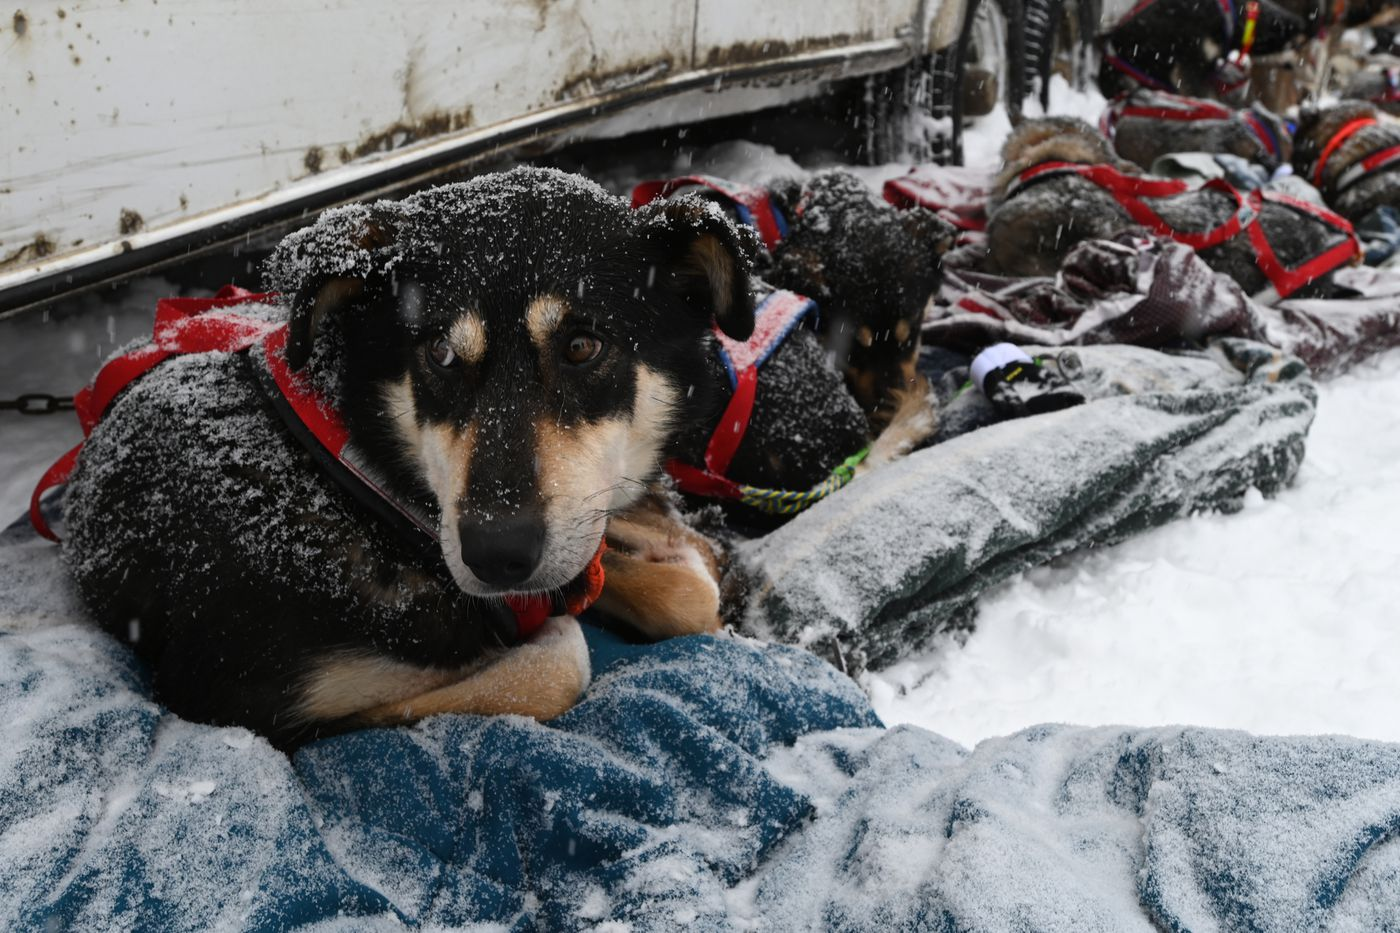 A sled dog named Anna and her teammates with musher Nic Petit rest on blankets before the restart of the Iditarod in Willow. (Bill Roth / ADN)